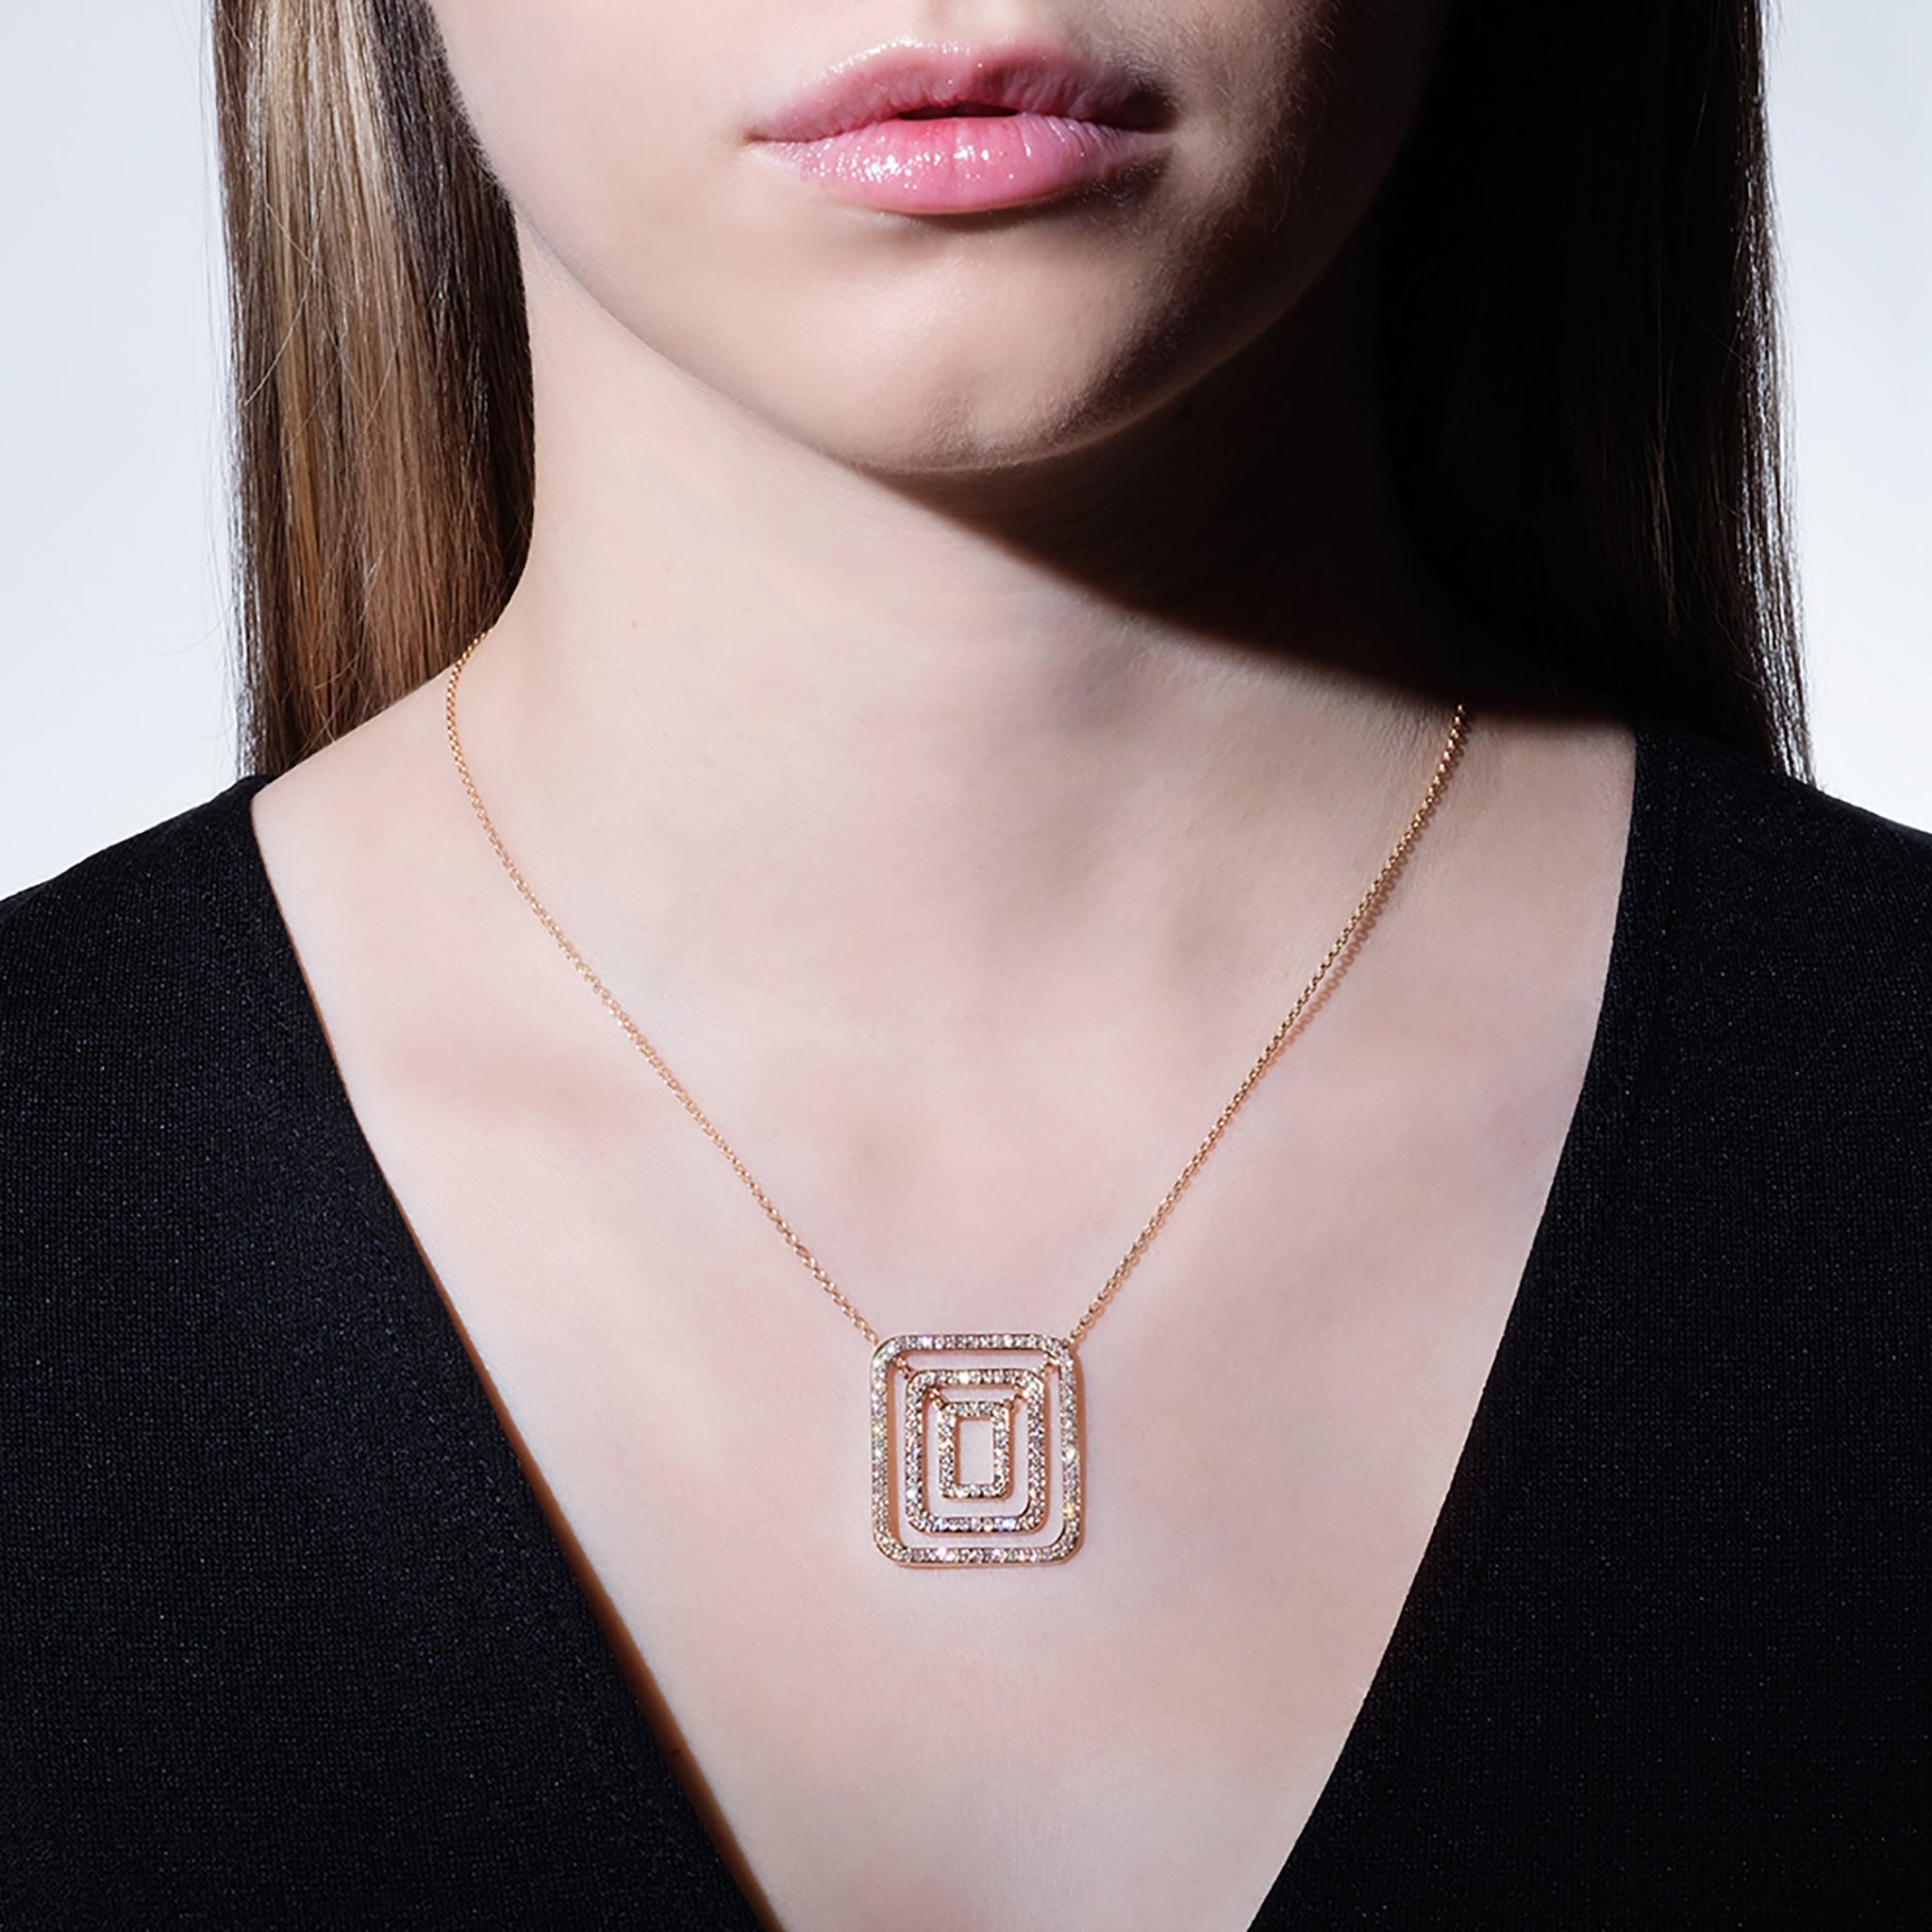 Mimi-So-Medium-Piece-Square-Swing-Necklace-18k-Yellow-Gold